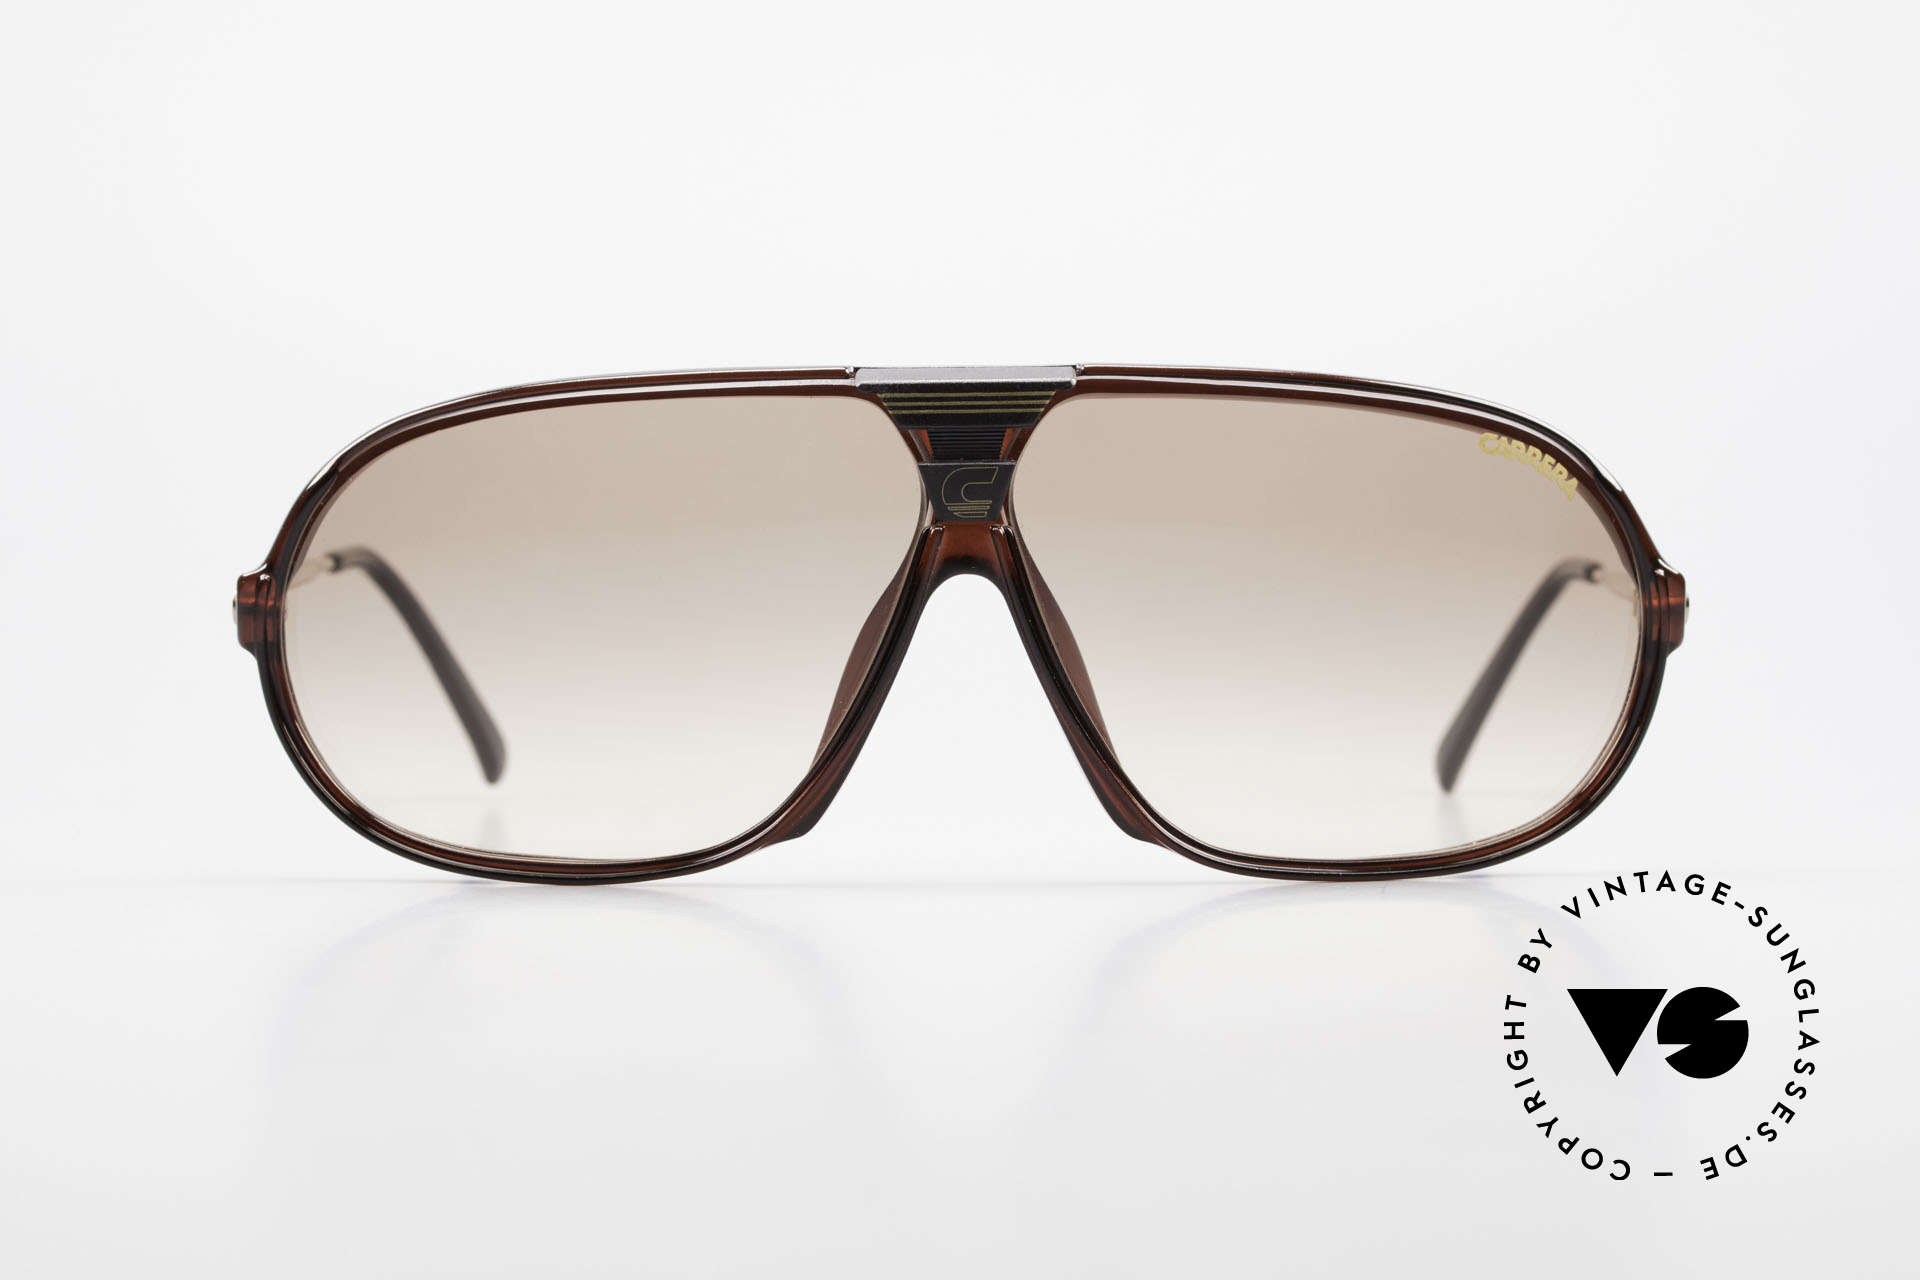 Carrera 5416 80's Interchangeable Lenses, lightweight synthetic frame = OPTYL material!, Made for Men